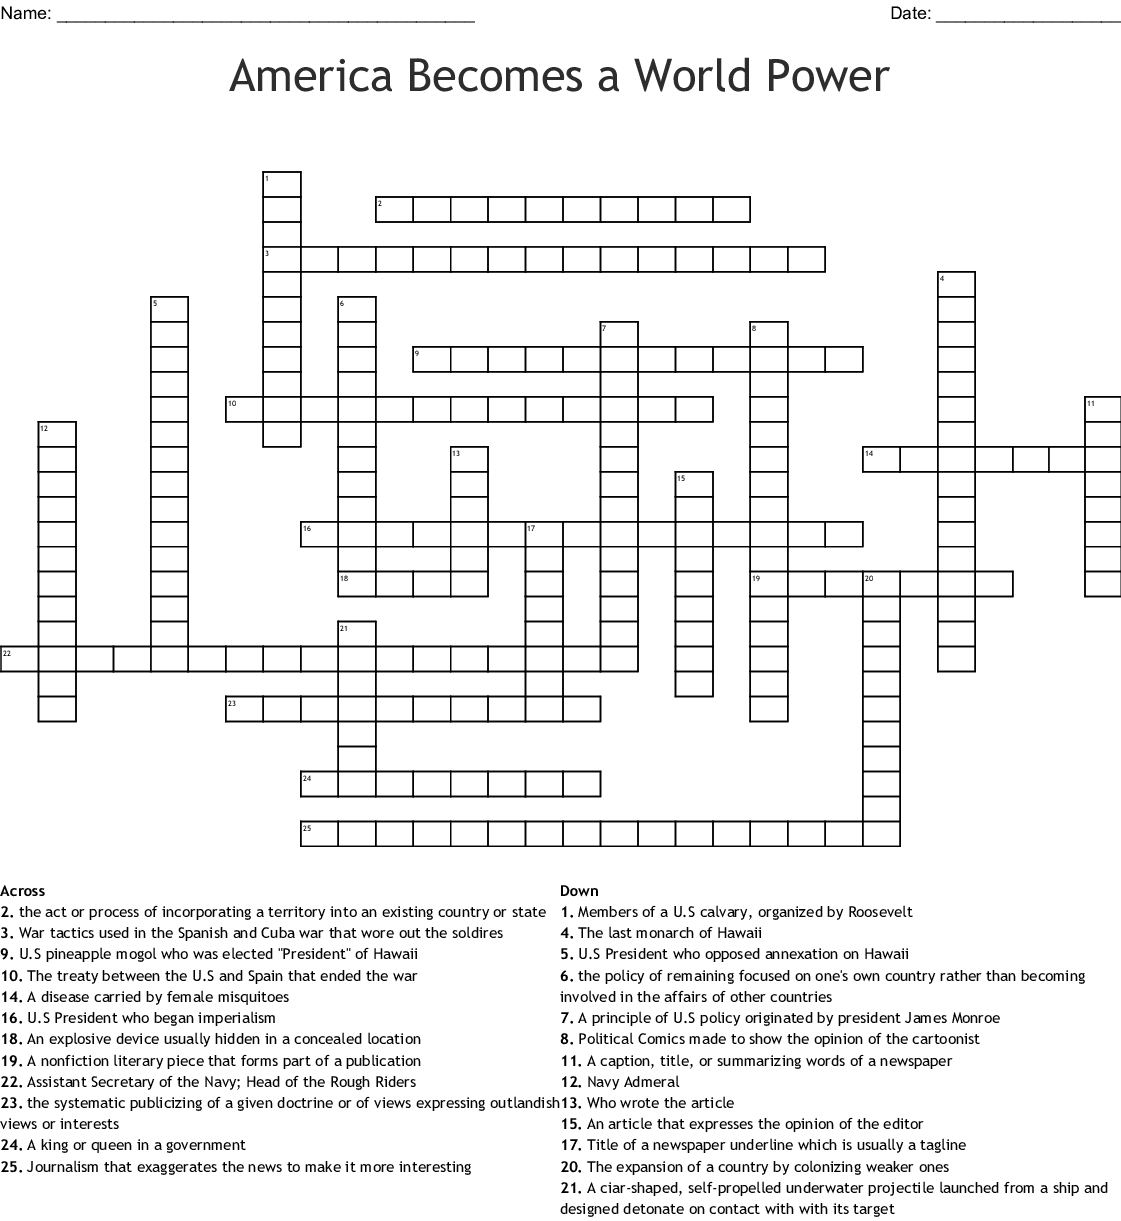 Similar To Crossword Puzzle American Becomes A World Power